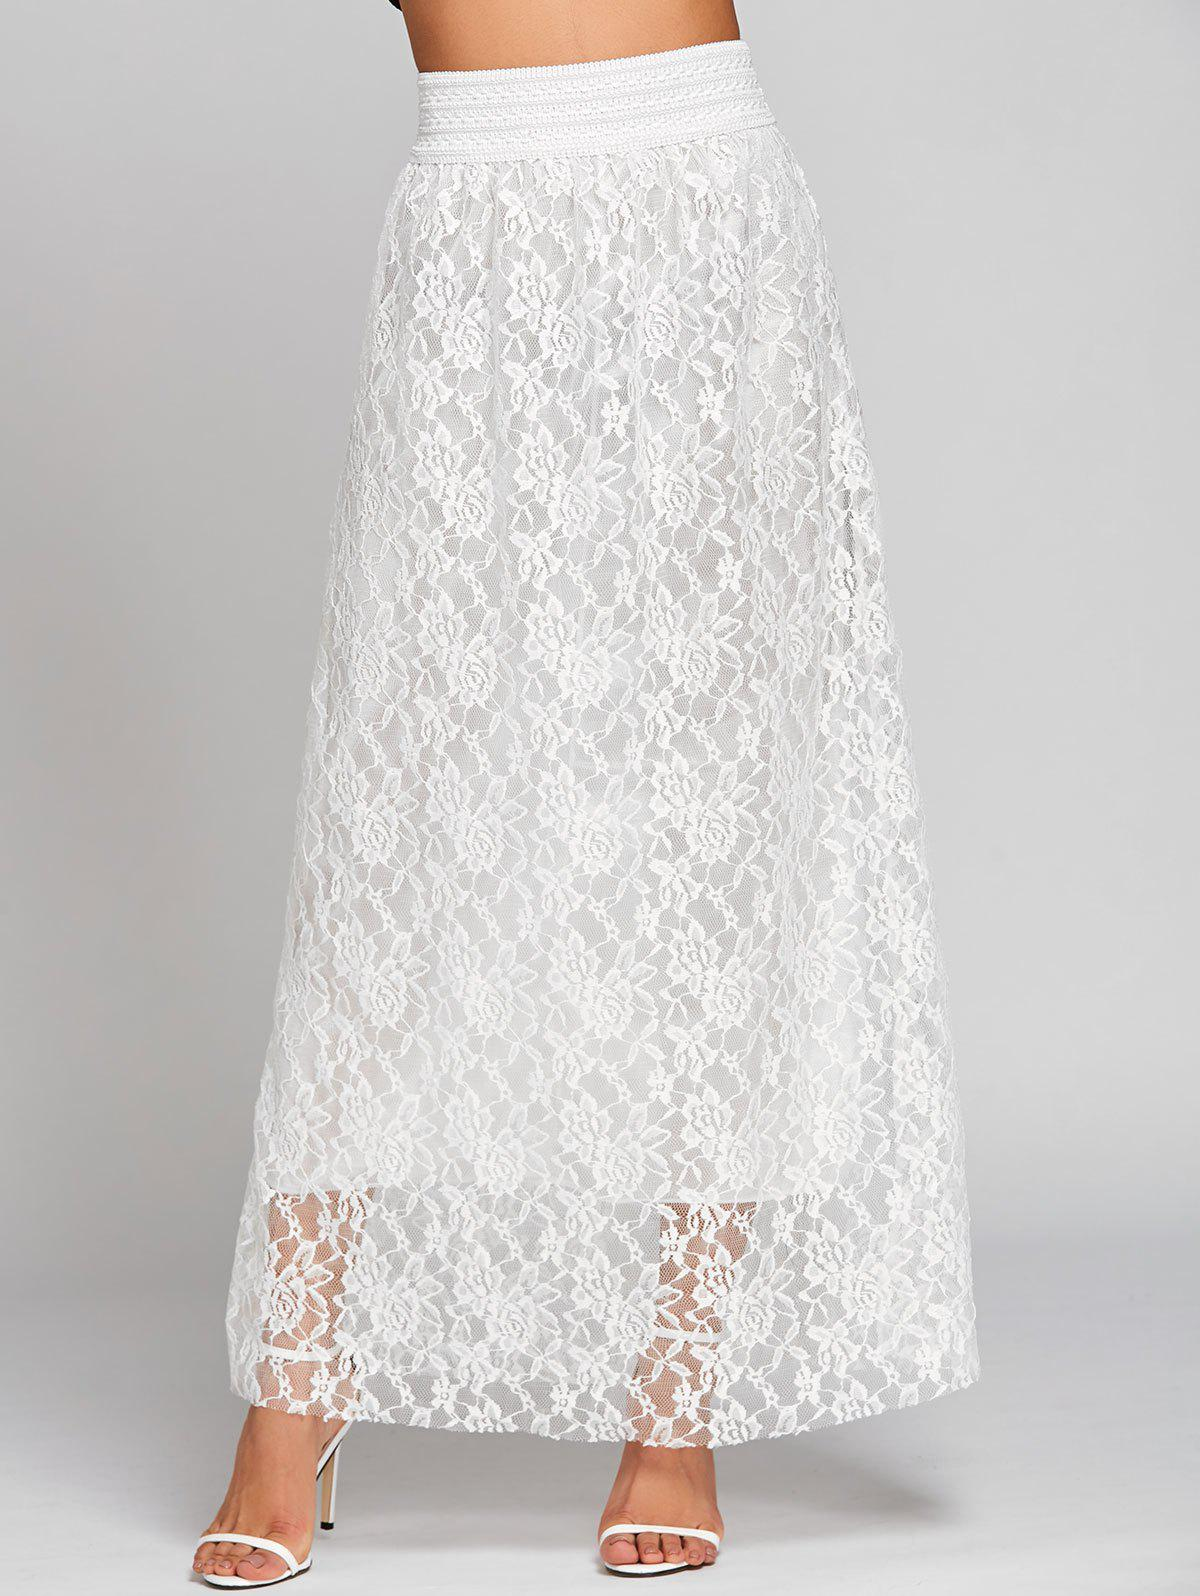 Shop Lace High Waist Maxi Skirt